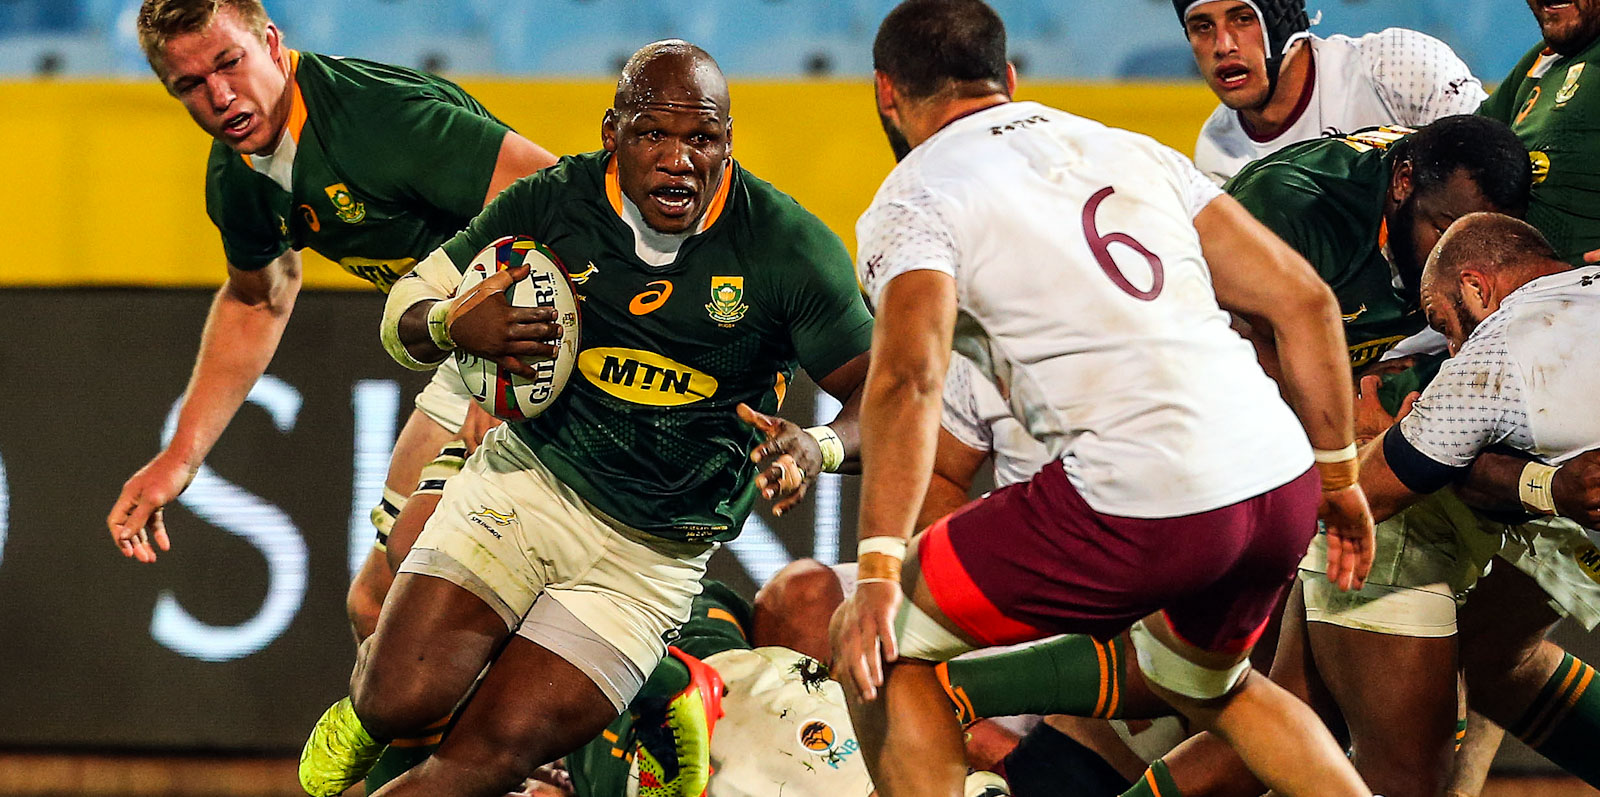 Bongi Mbonambi had a typically busy evening for the Boks and scored one of their six tries.